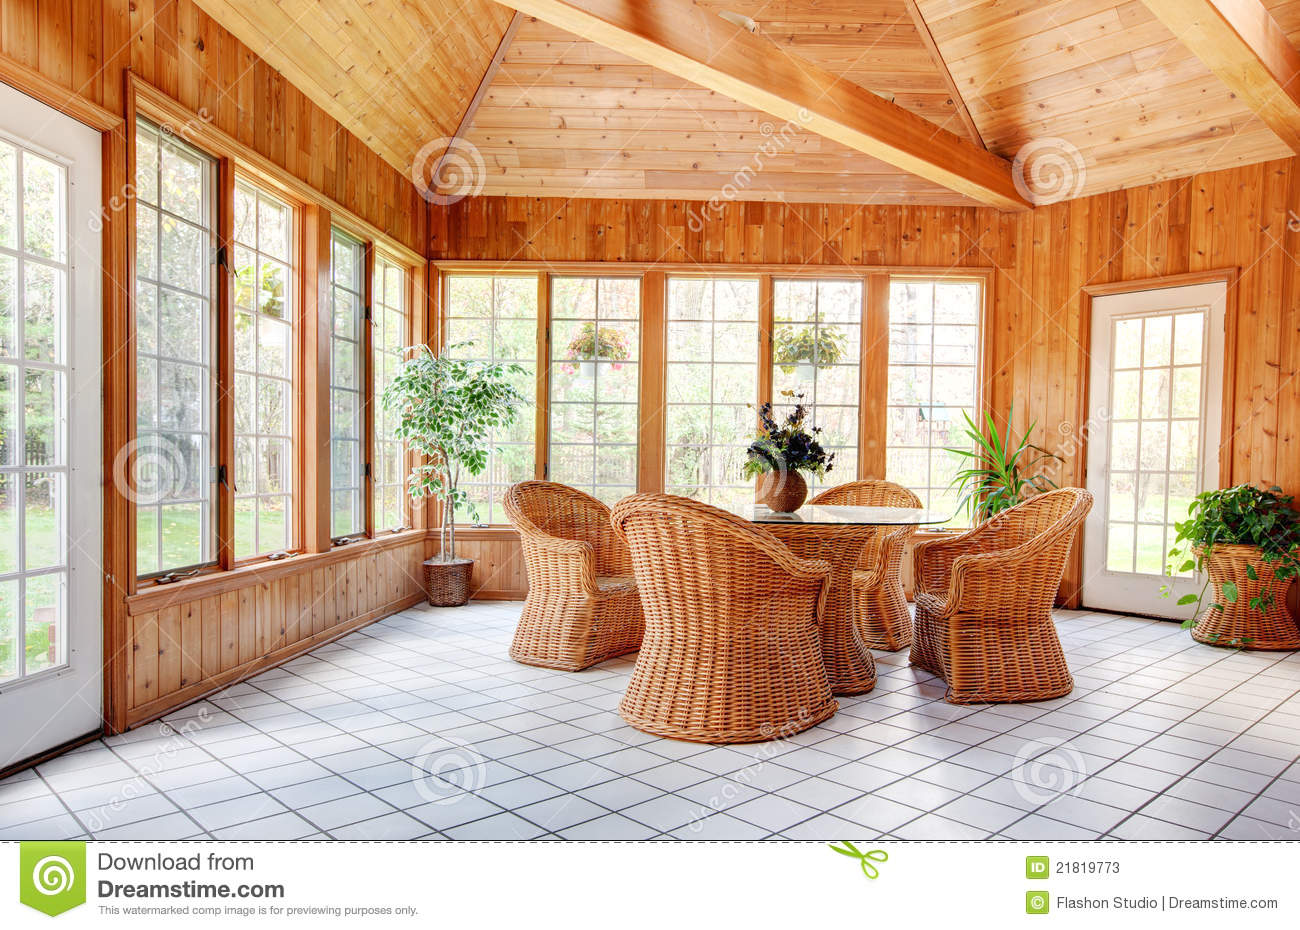 Wooden wall sun room interior stock photos image 21819773 for Sunroom interior walls